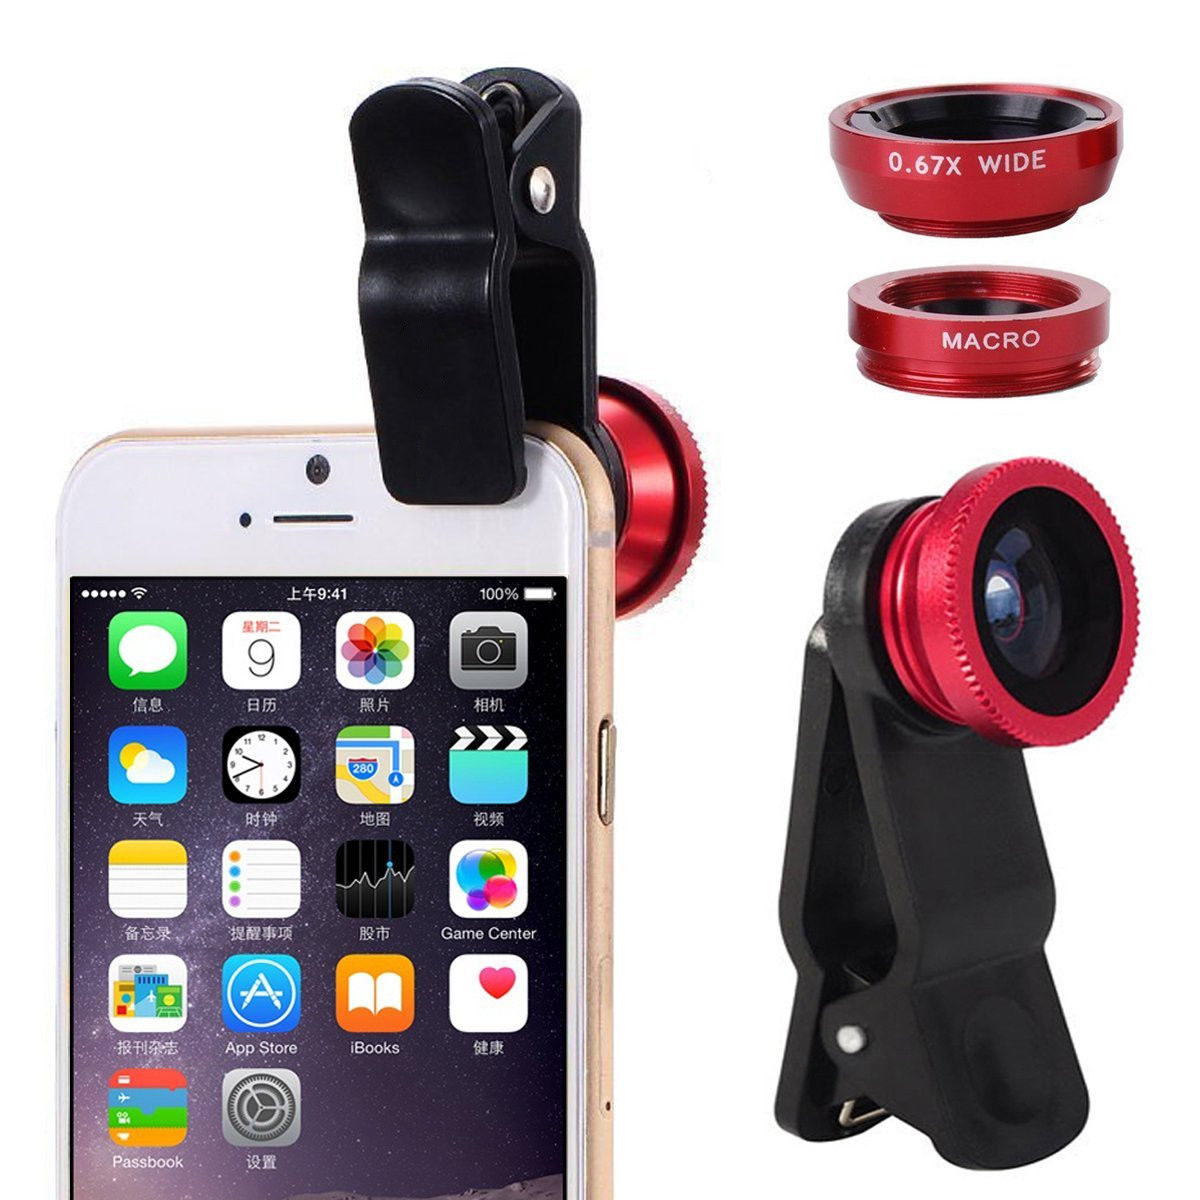 Black Smart Phone Beauty Lens,CoolFoxx 3 in 1 Portable Mini 3 Adjustable 0.4-0.6X Wide Angle /&10X Macro Lens for Iphone /& Most Smart Phone